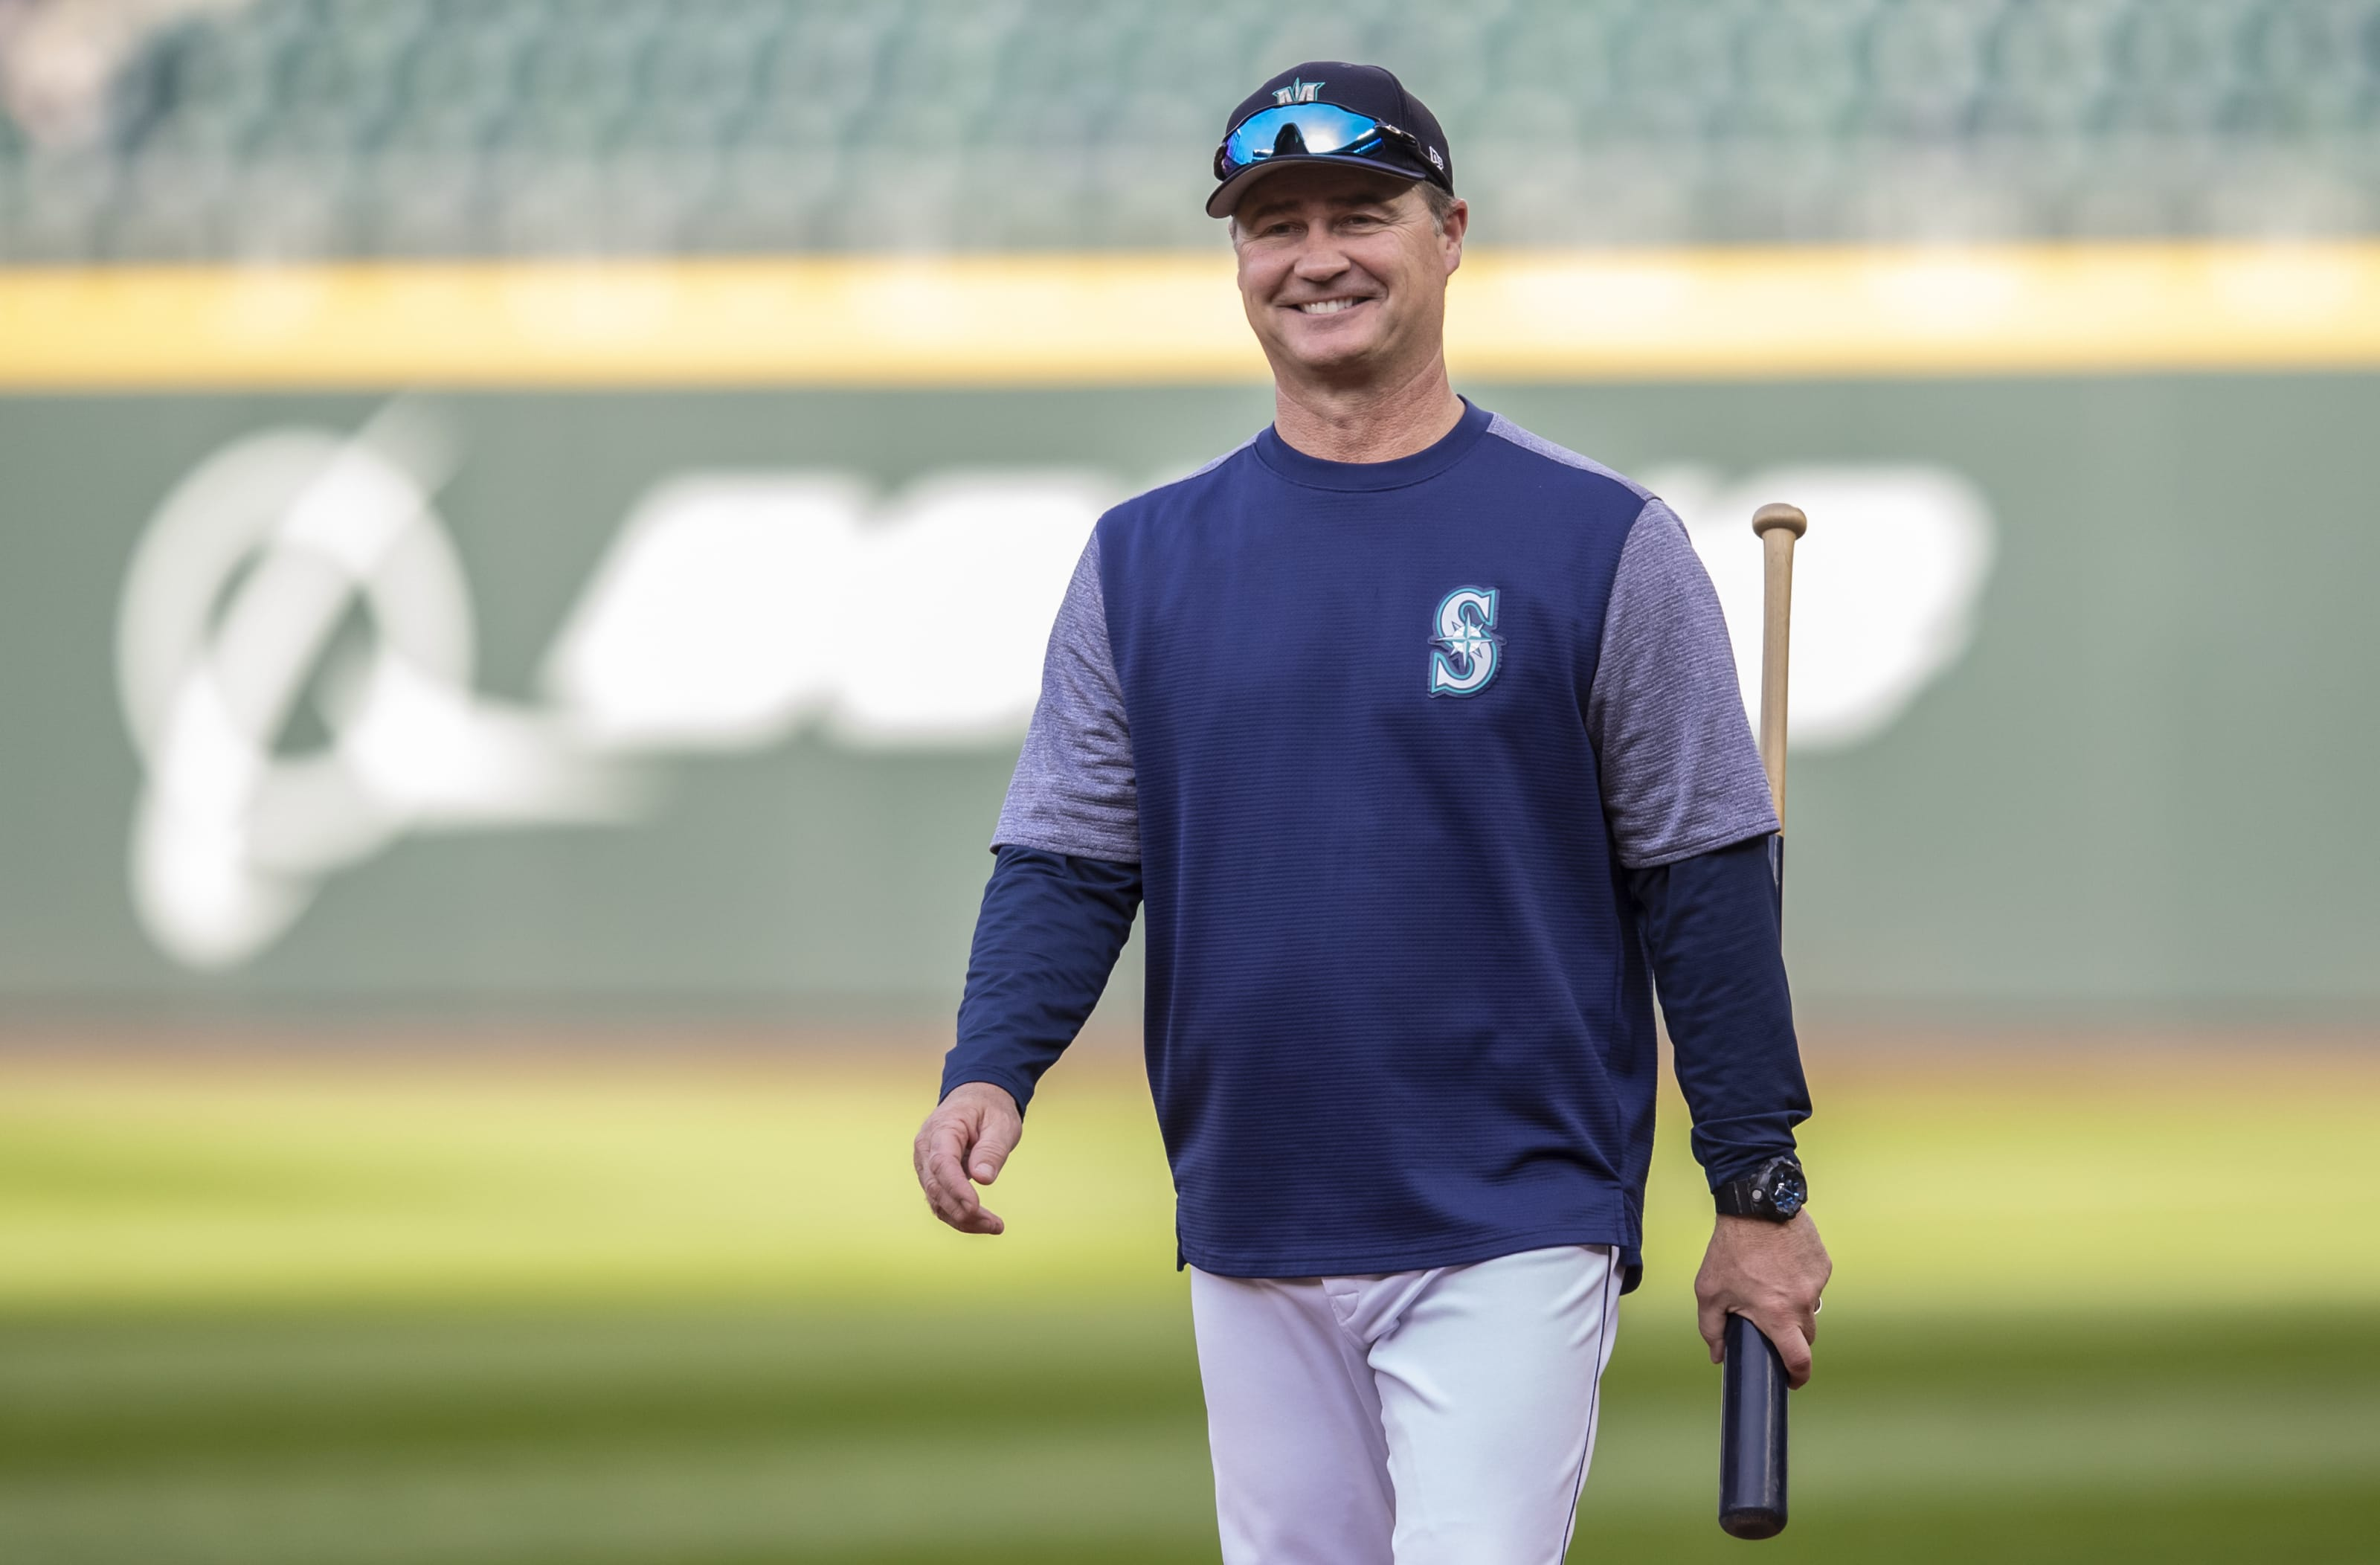 Seattle Mariners manager Scott Servais smiles.